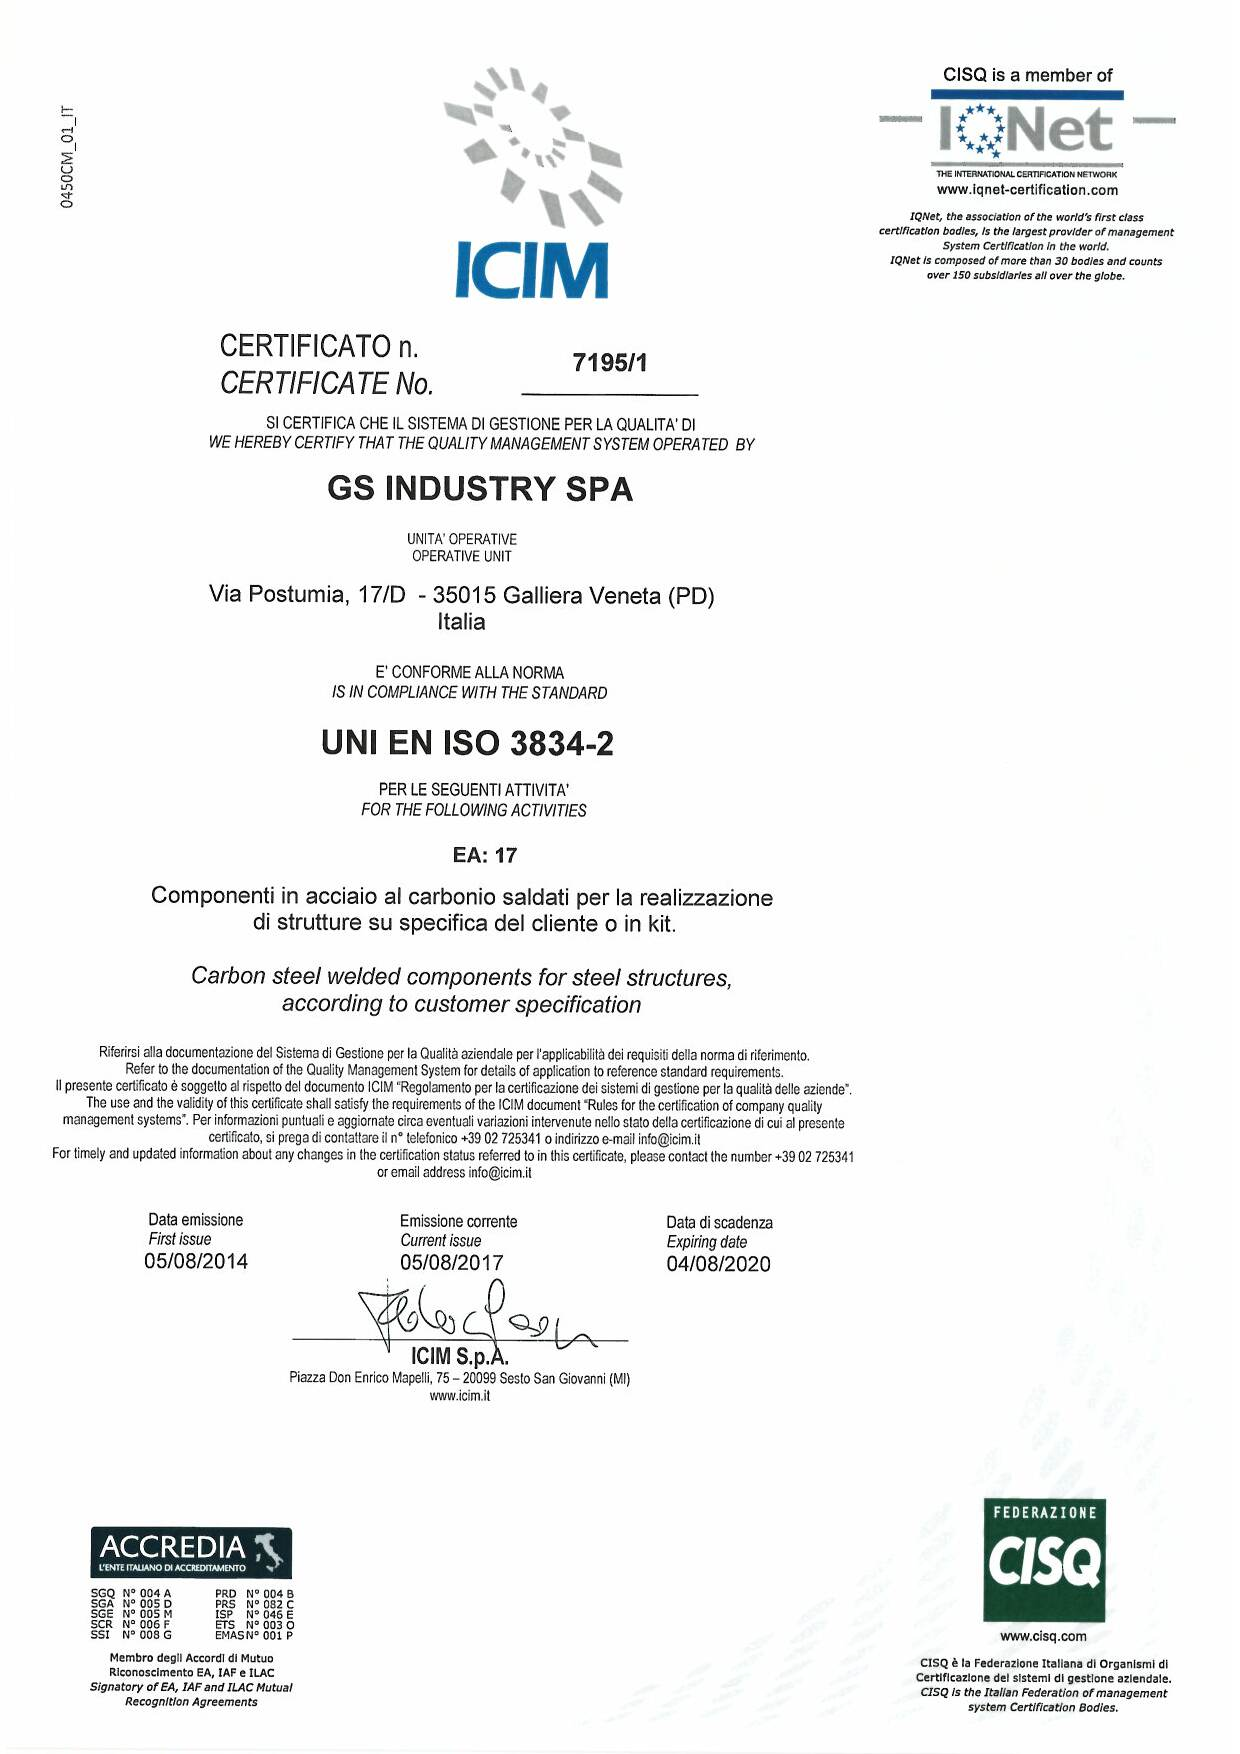 Certificate of quality - GS Industry